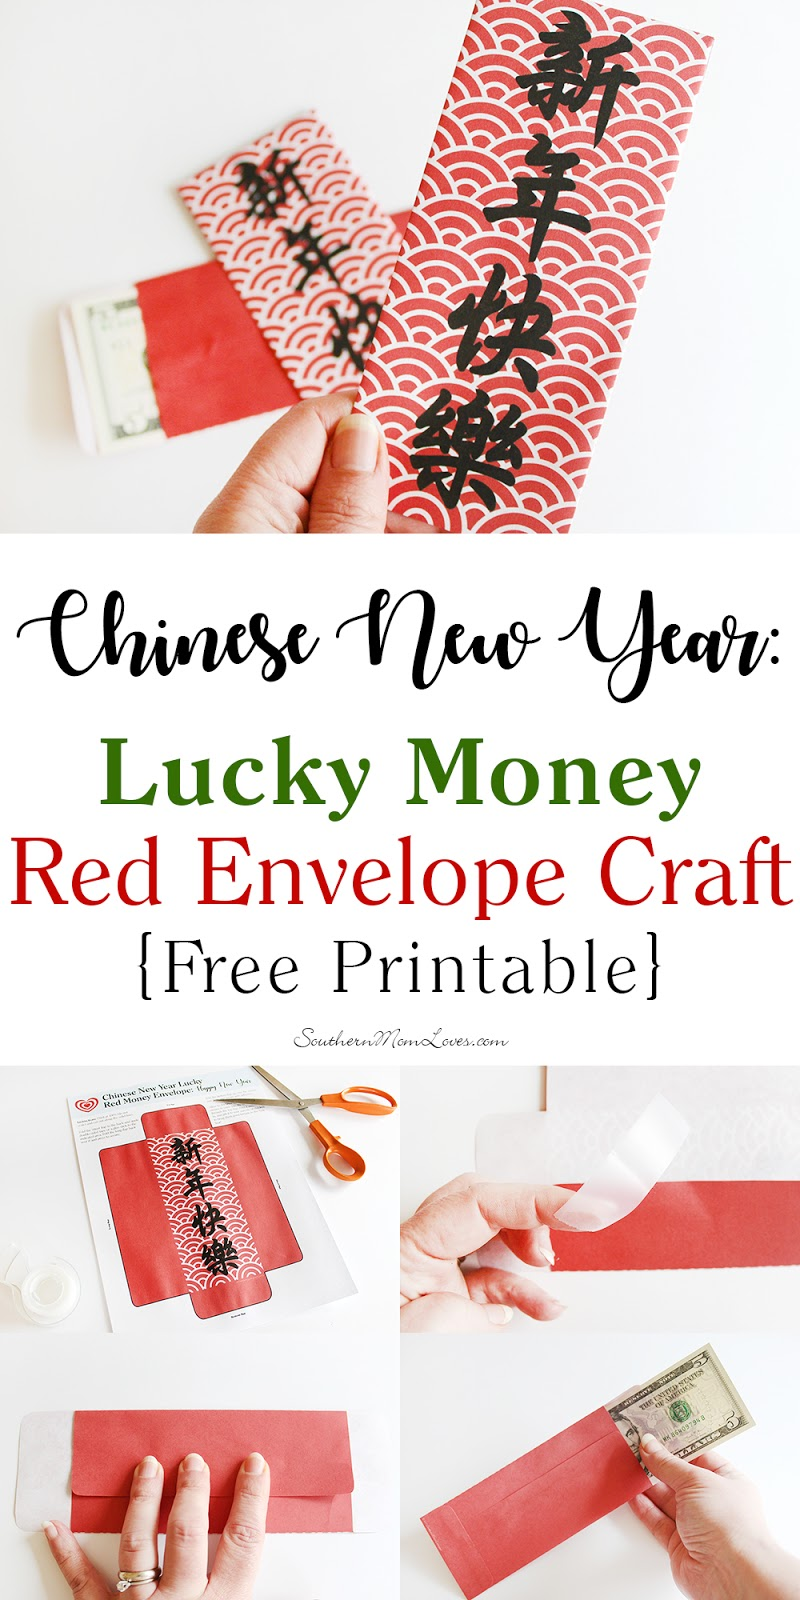 southern mom loves chinese new year lucky money red envelope craft free printable